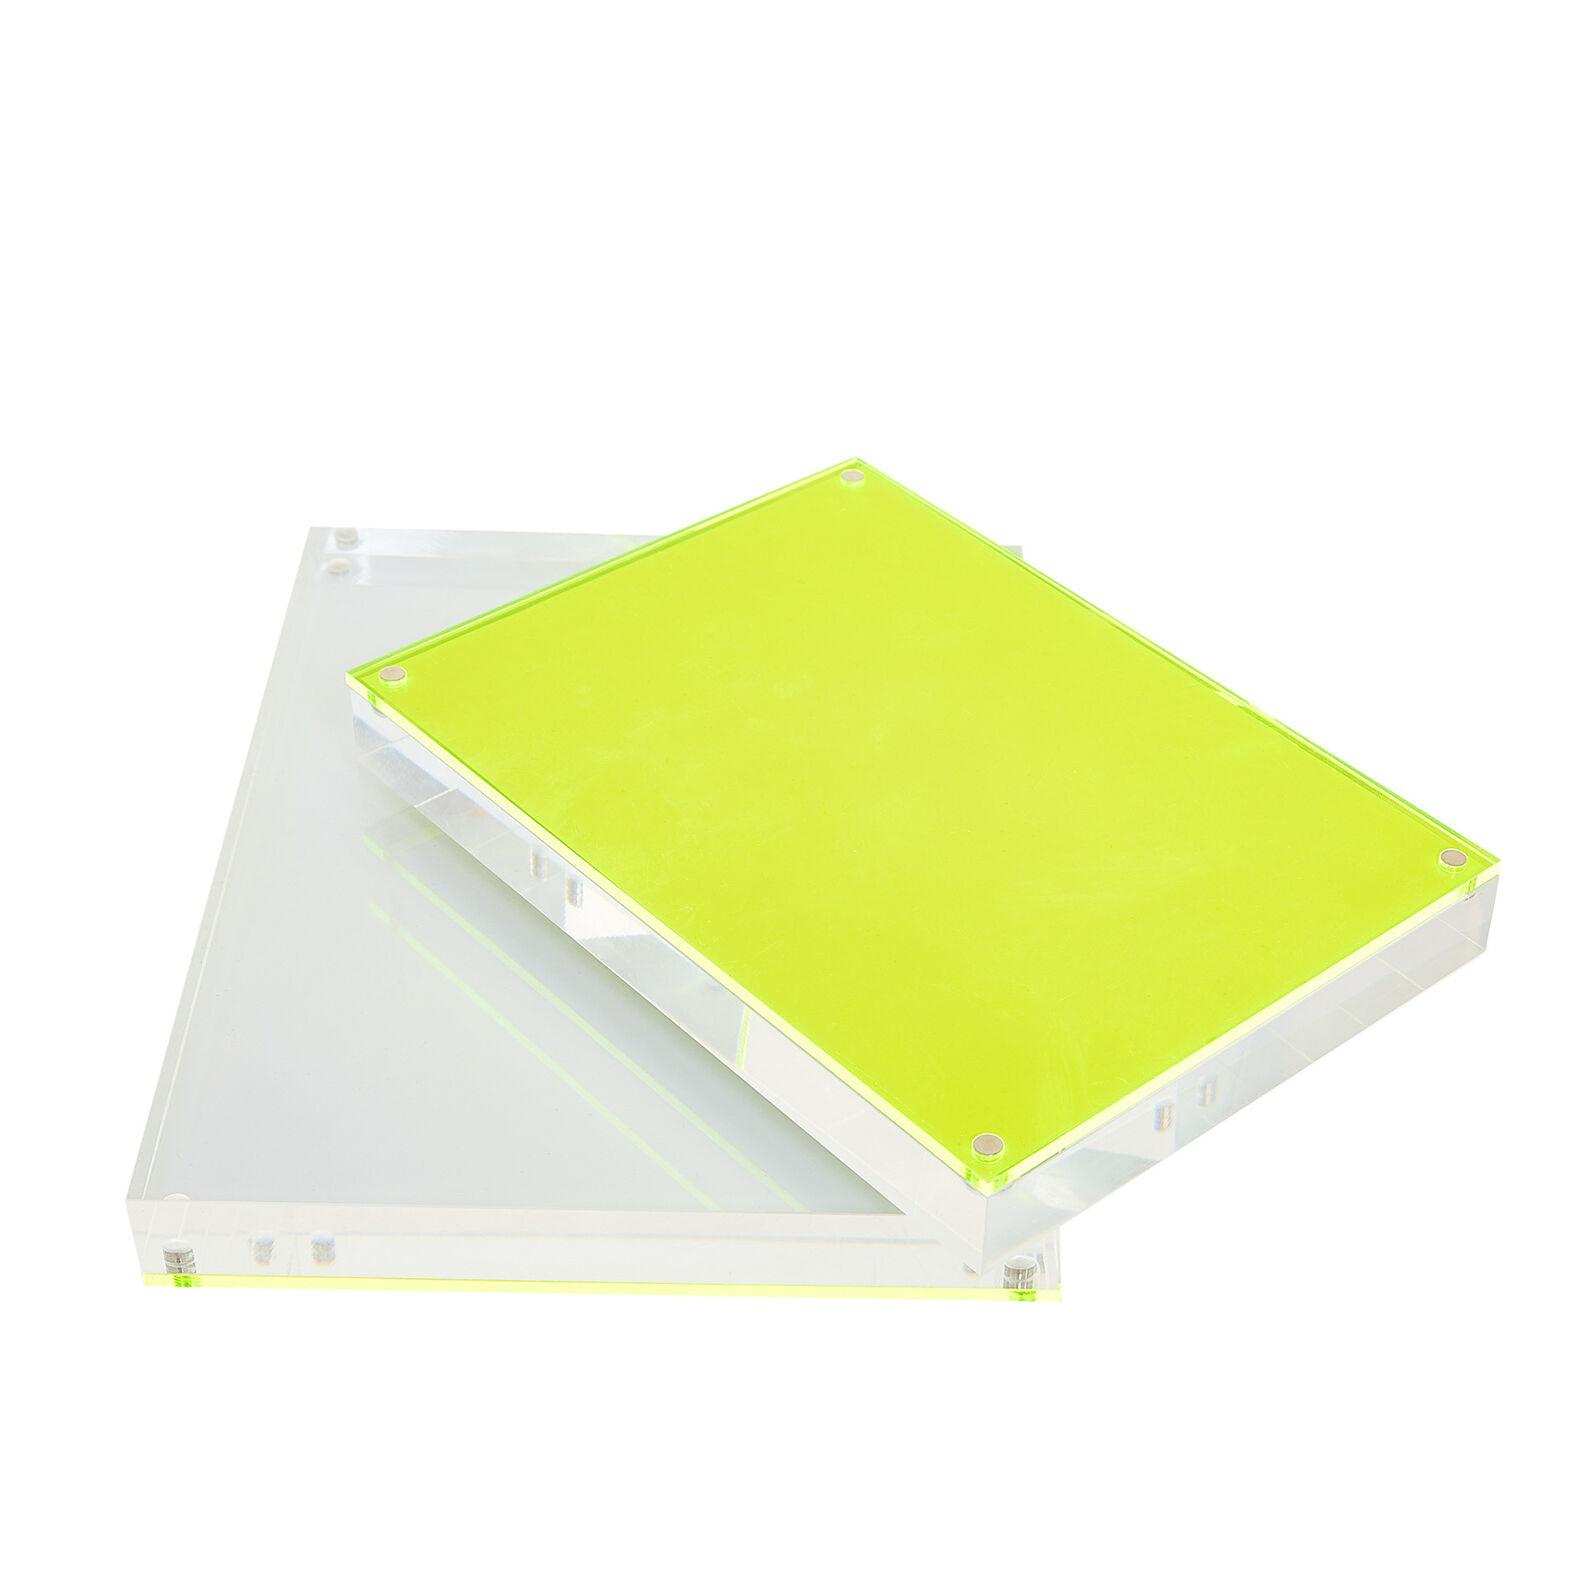 Plastic photo frame with fluorescent details